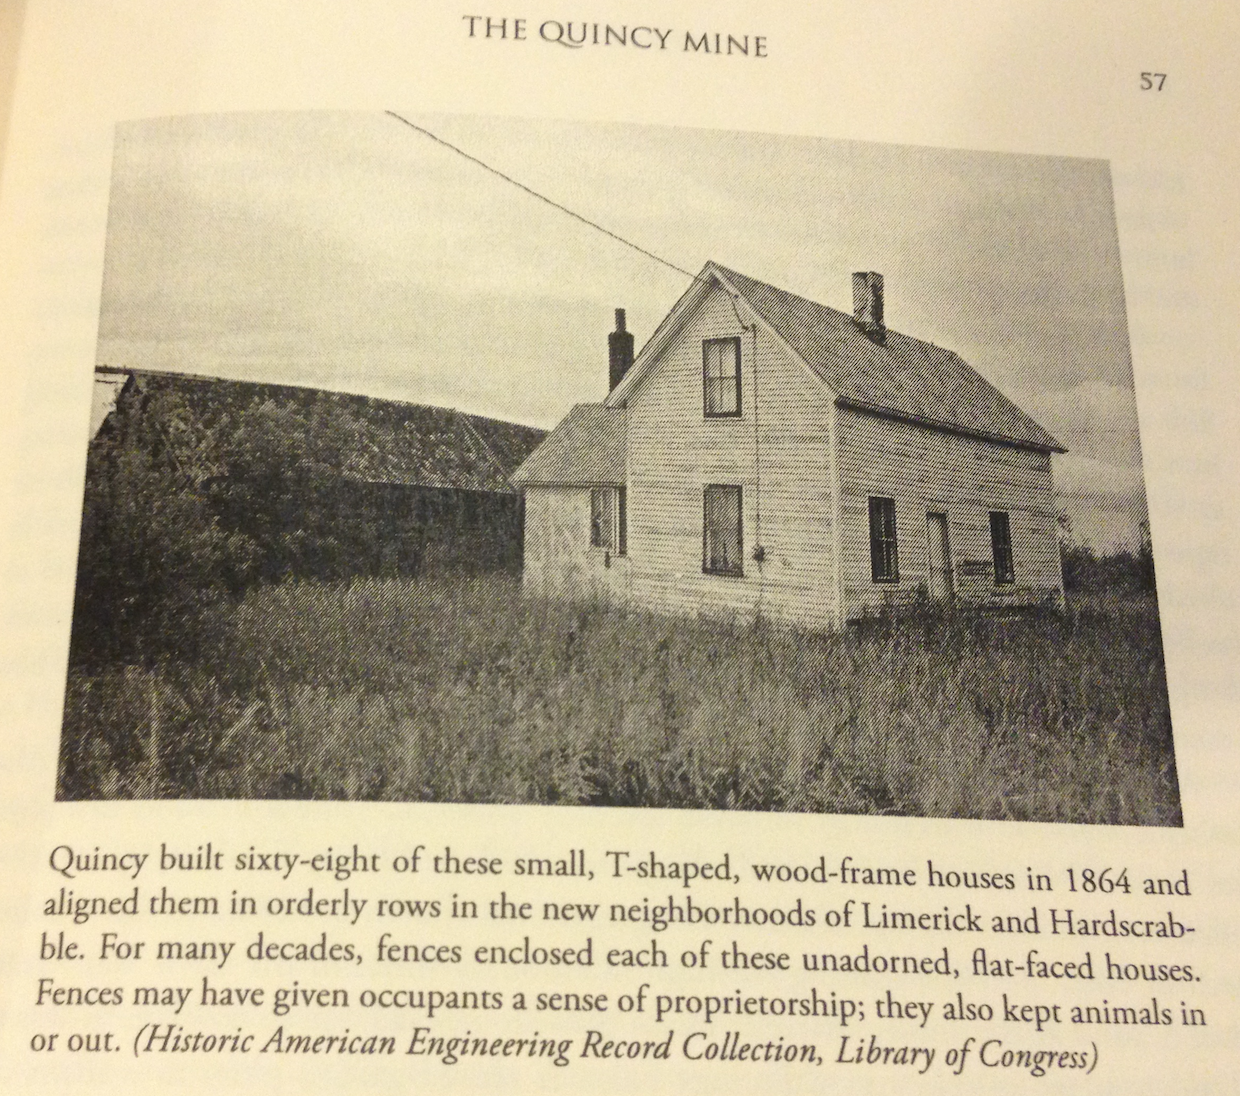 The T-Shaped houses built by Quincy Mine.